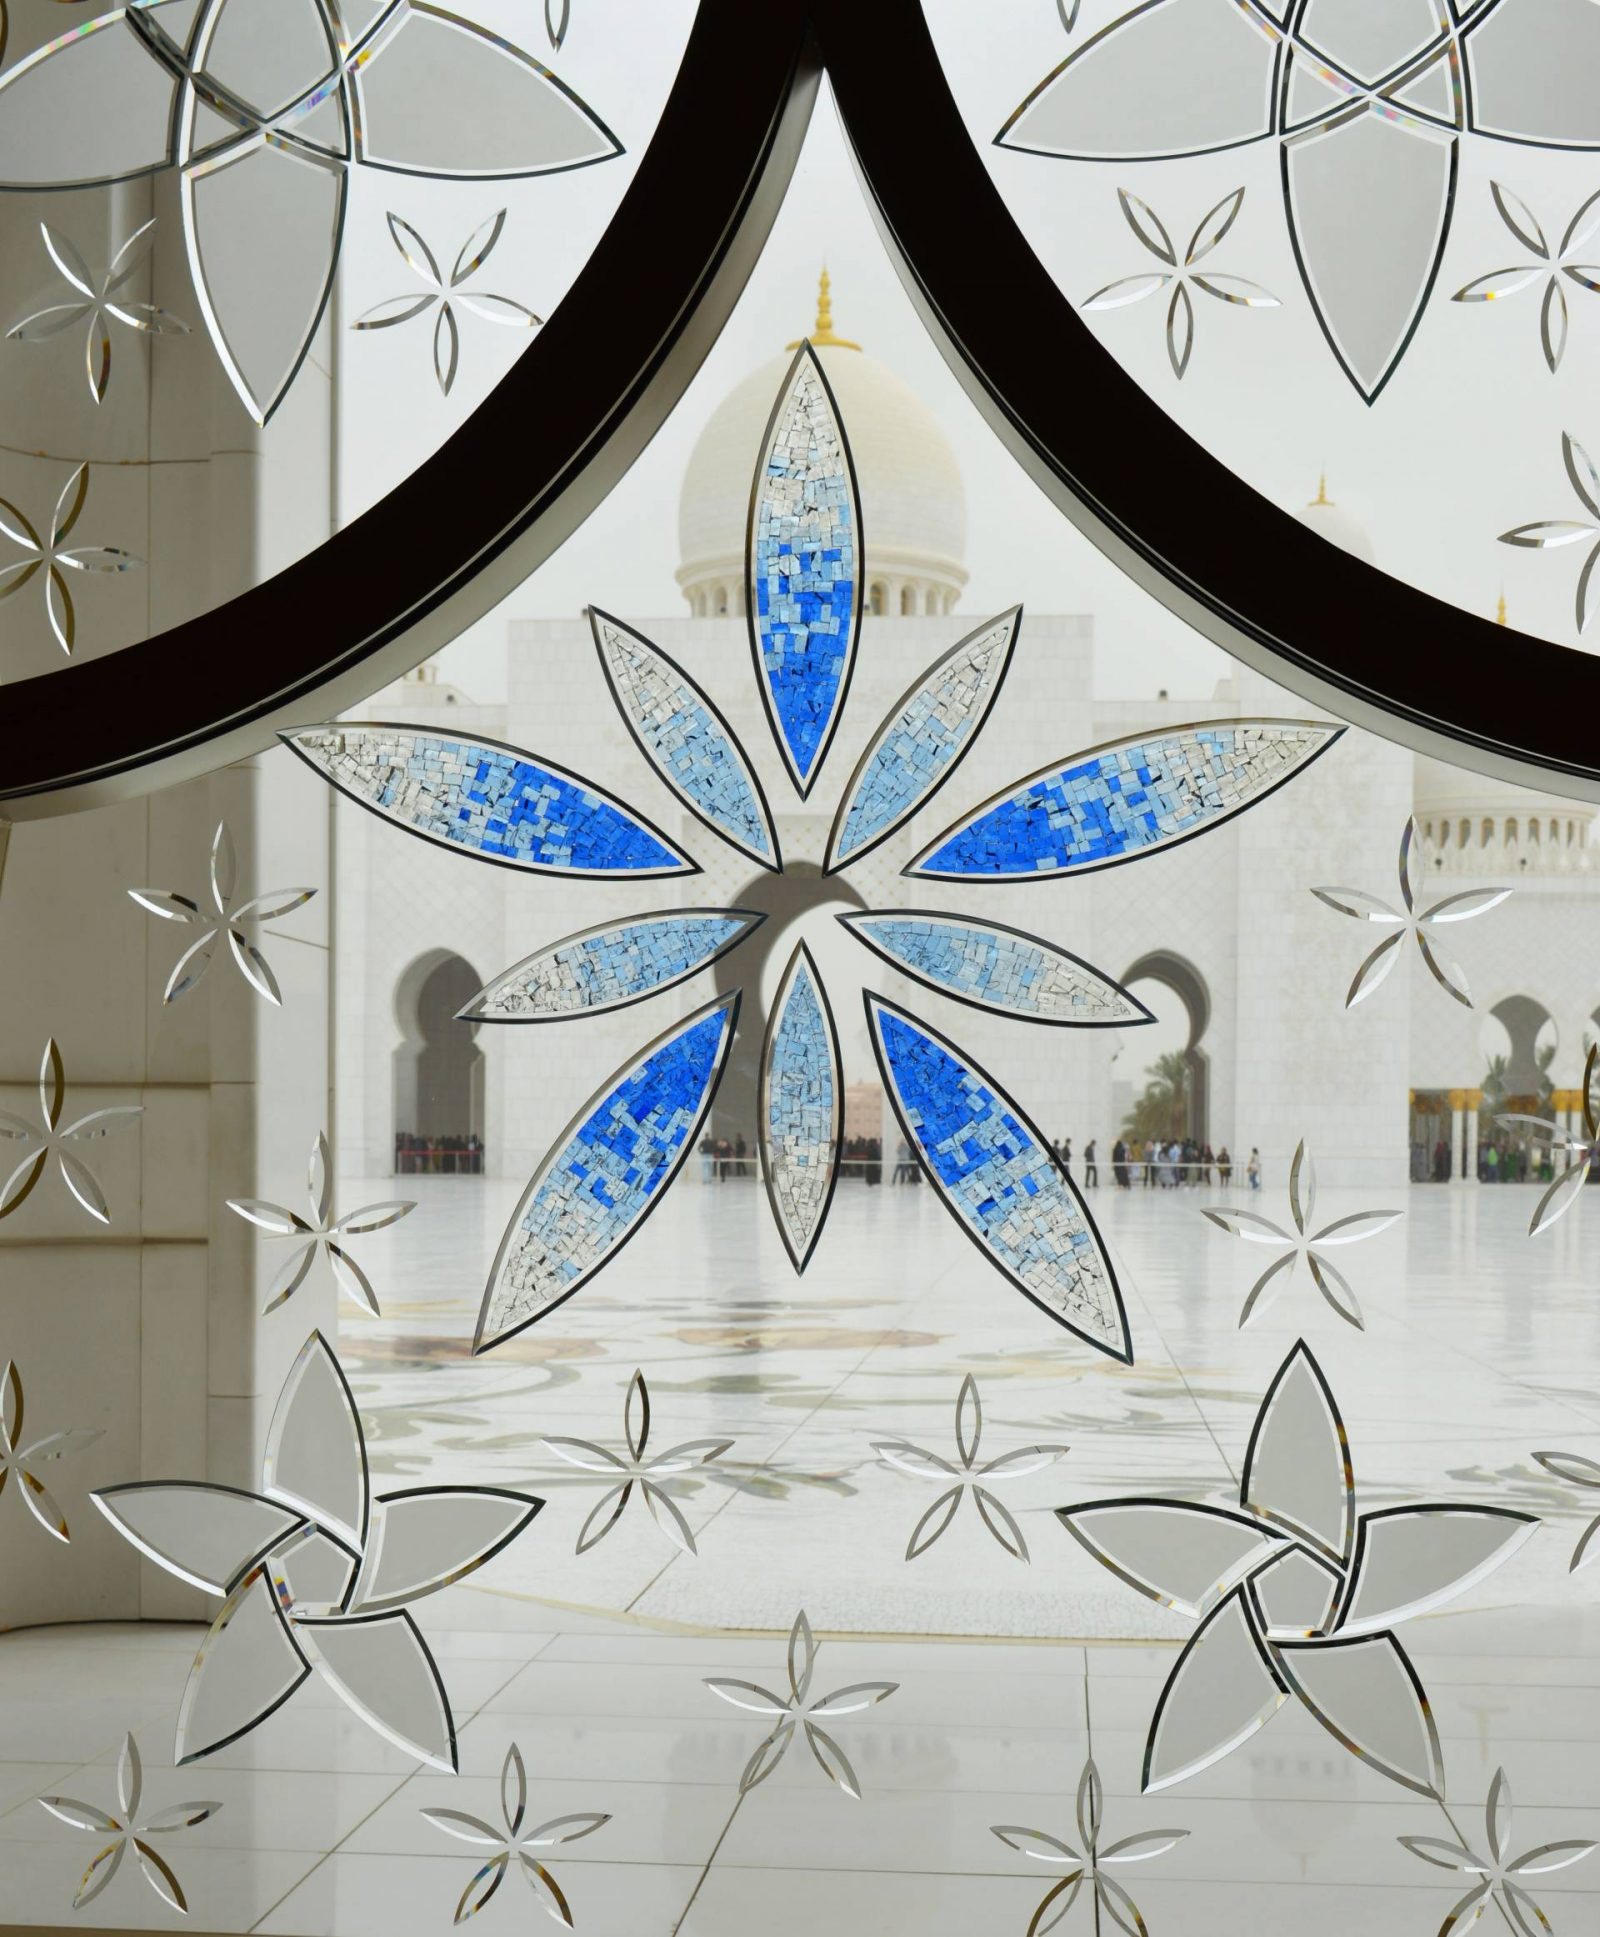 Holiday in Abu Dhabi Sheikh Zayed Grand Mosque